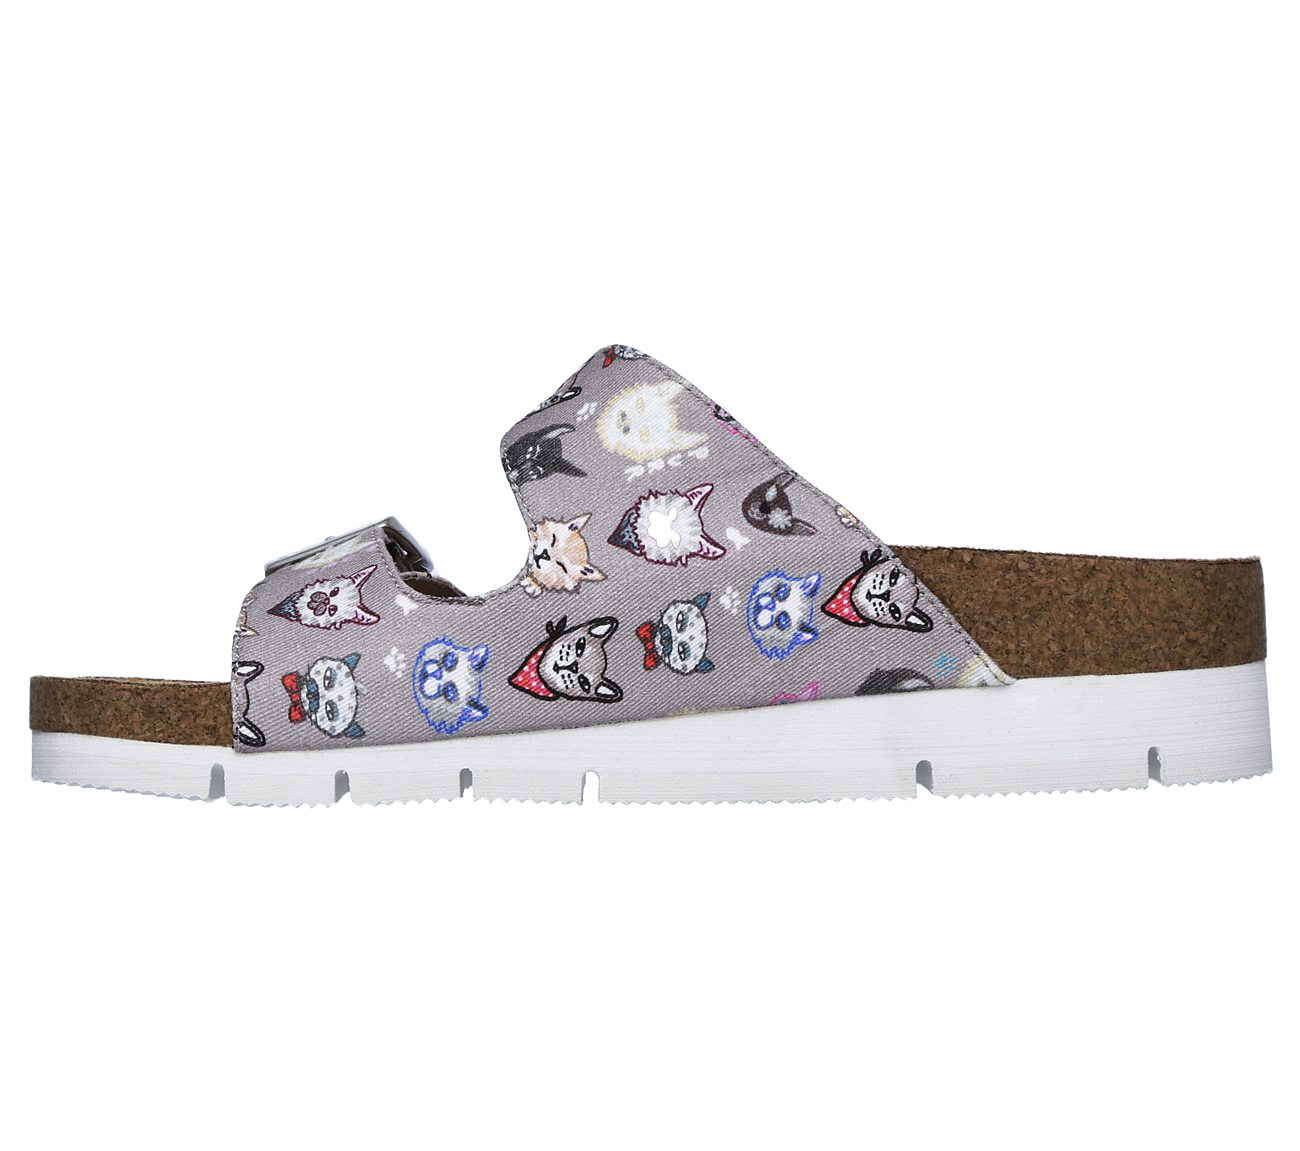 9b39706447ad Buy SKECHERS BOBS Bohemian - Dandy Cat BOBS Shoes only  27.00